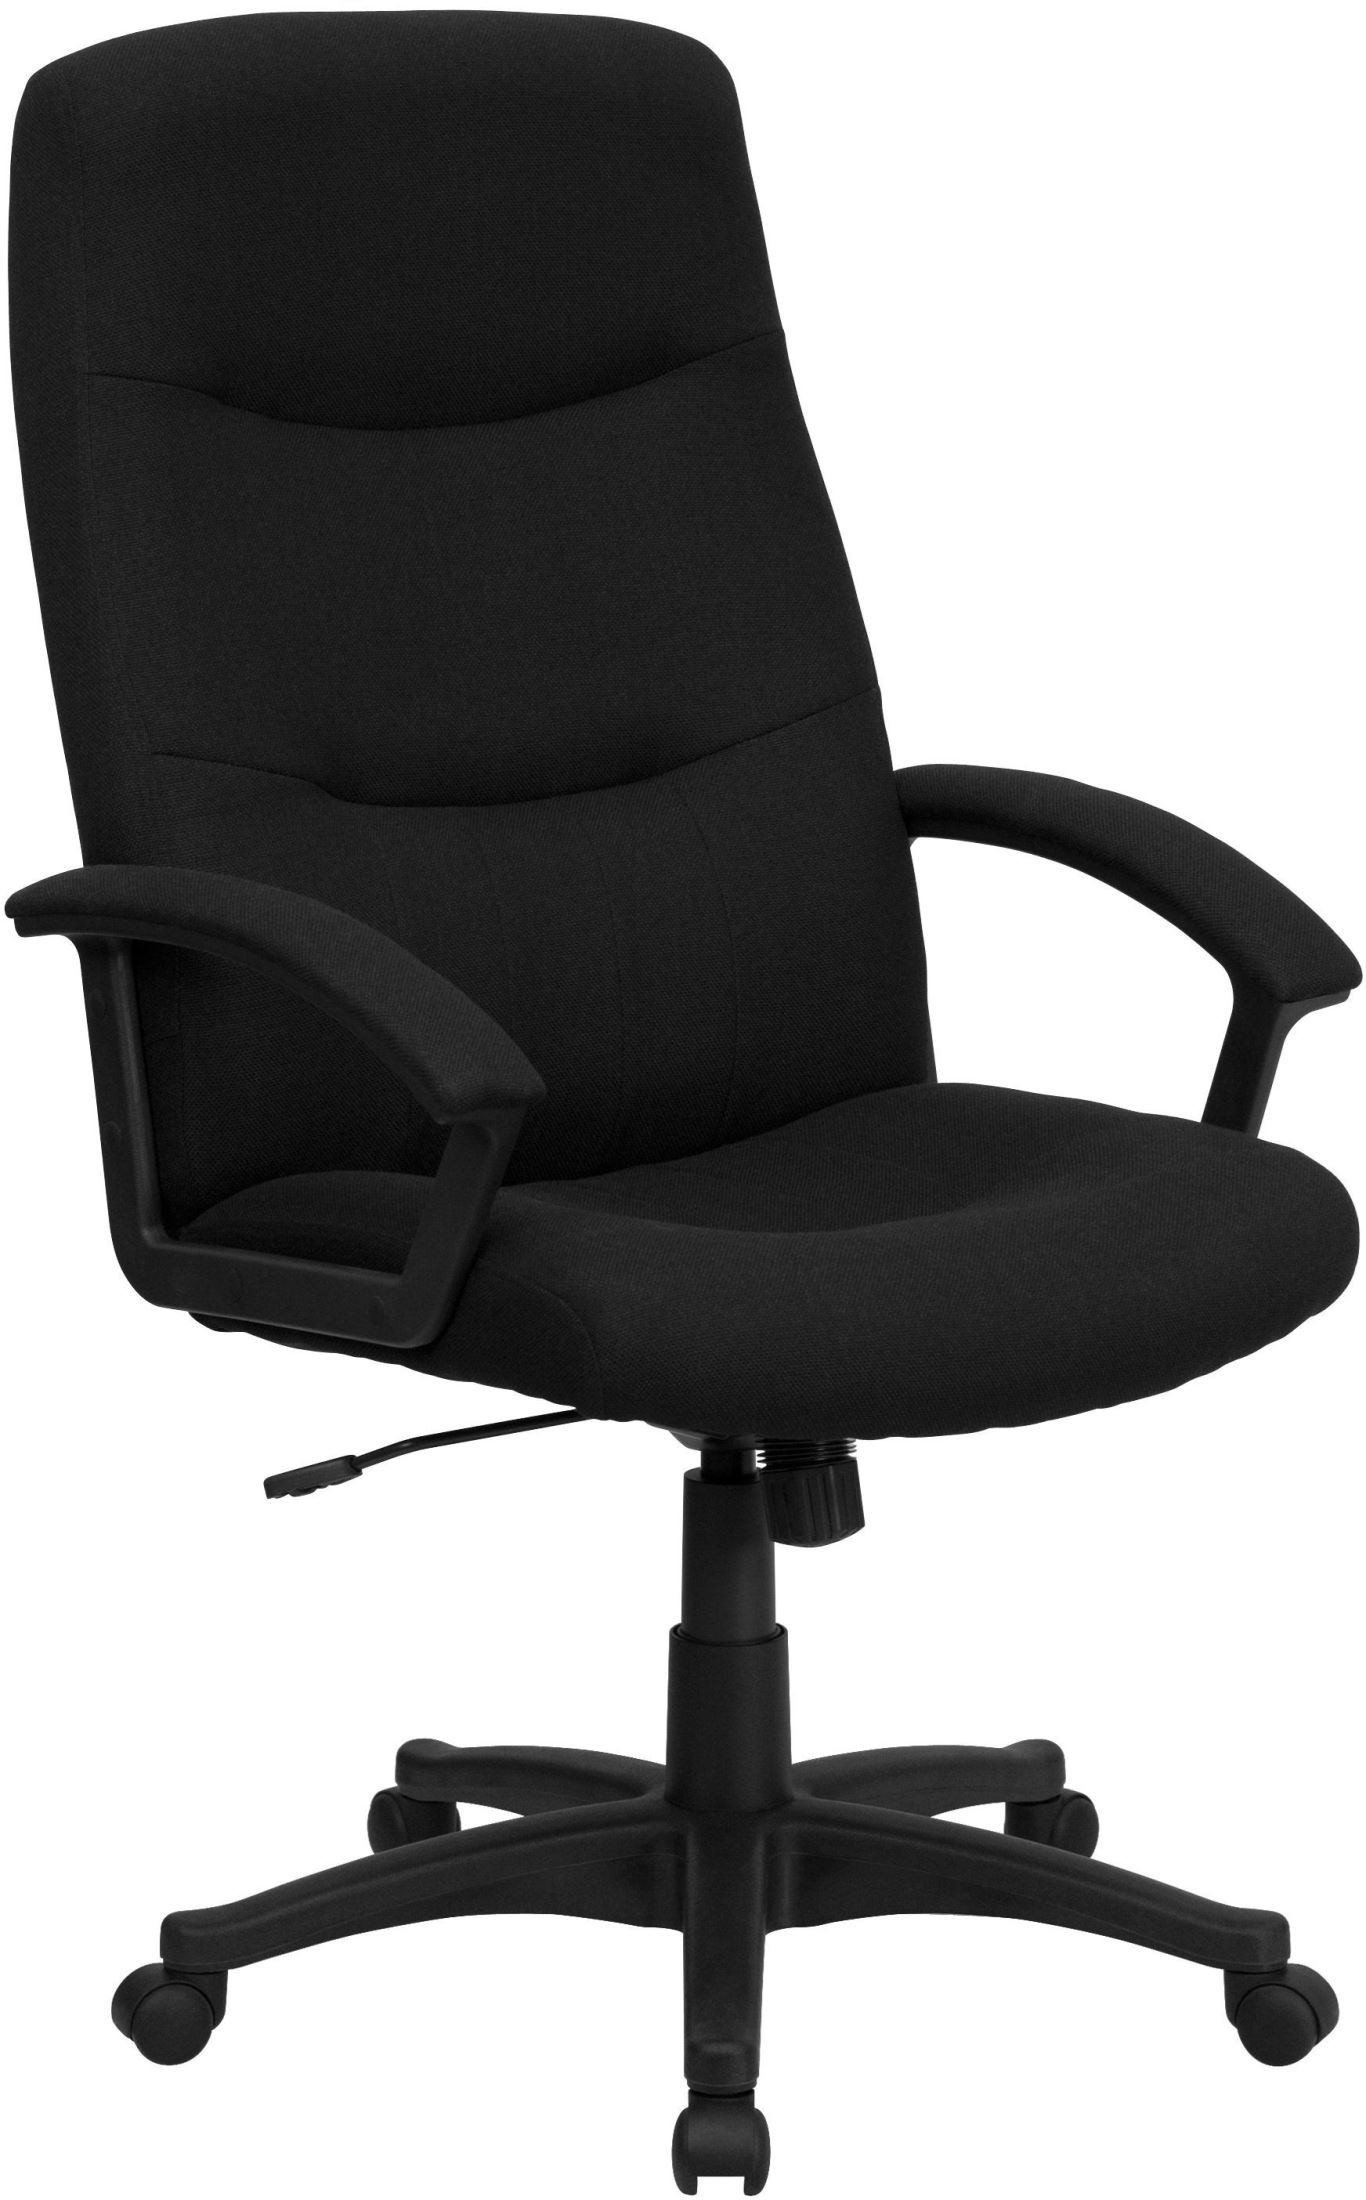 coleman lumbar quattro chair forest green covers high back fabric executive swivel office min order